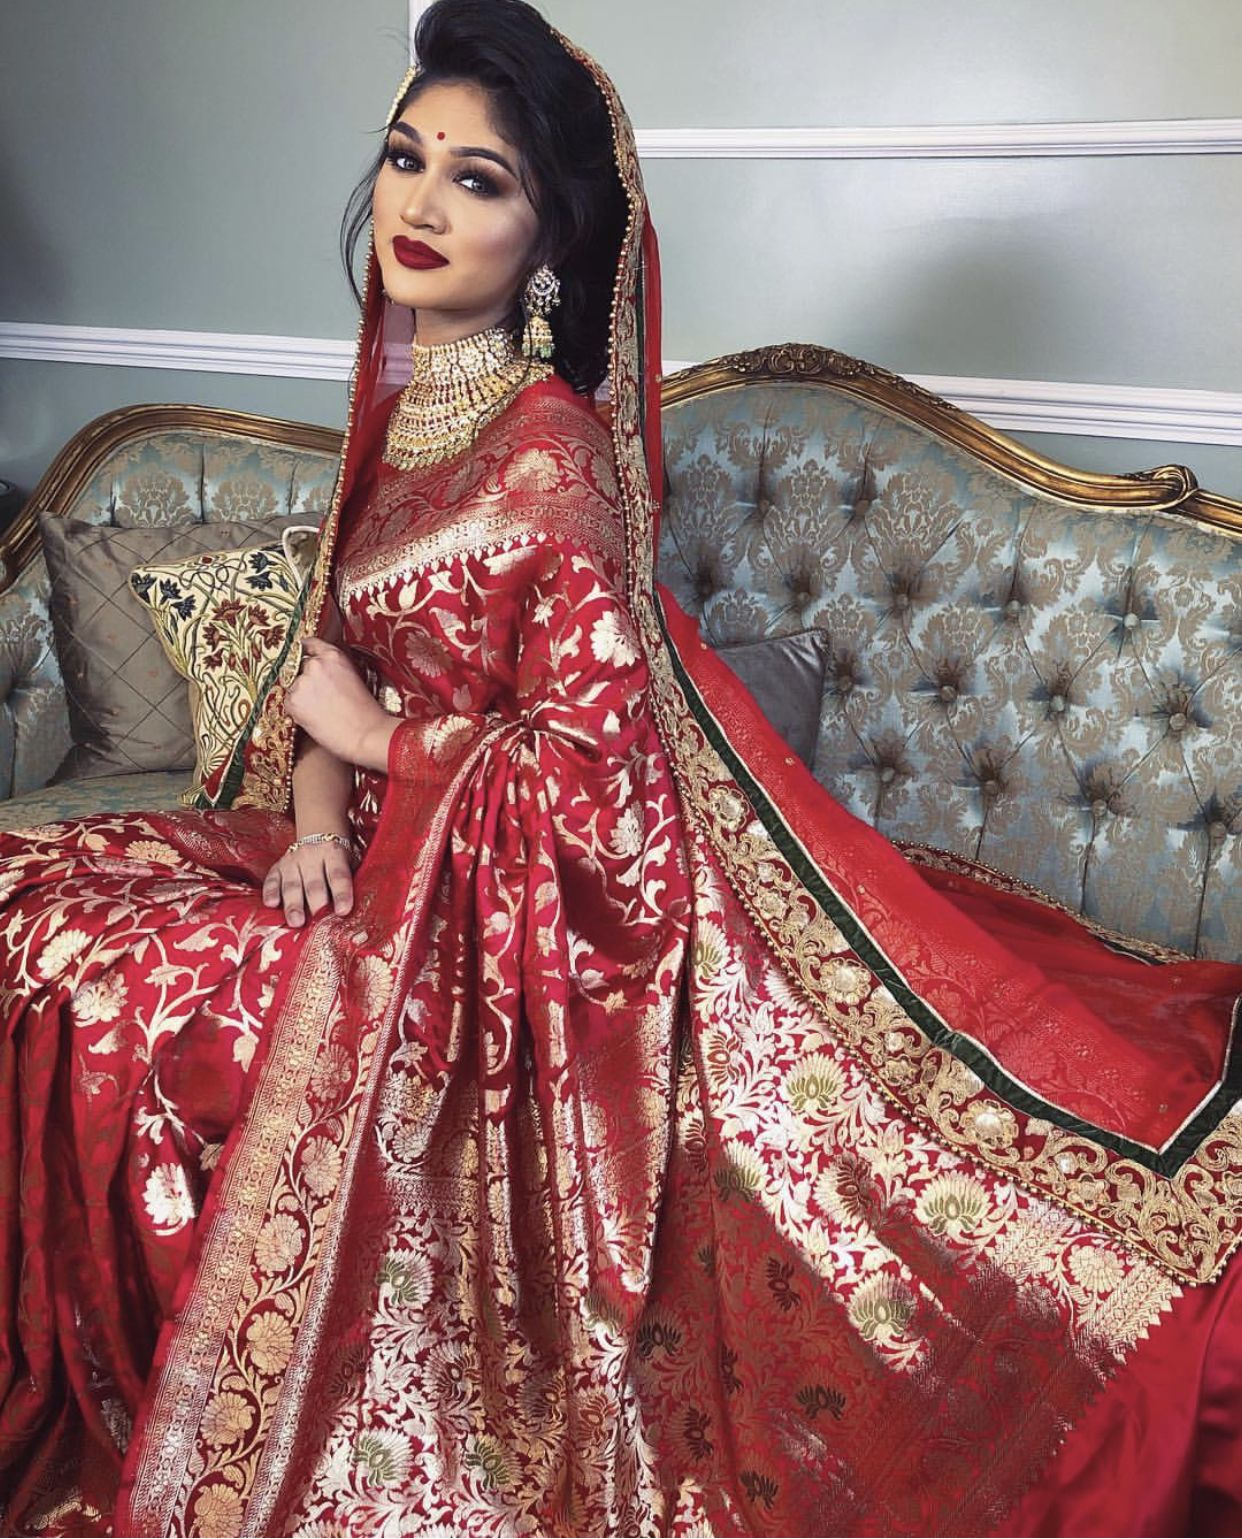 Bangladeshi Bride Bridal Lehenga Red Bridal Saree Indian Bridal Dress